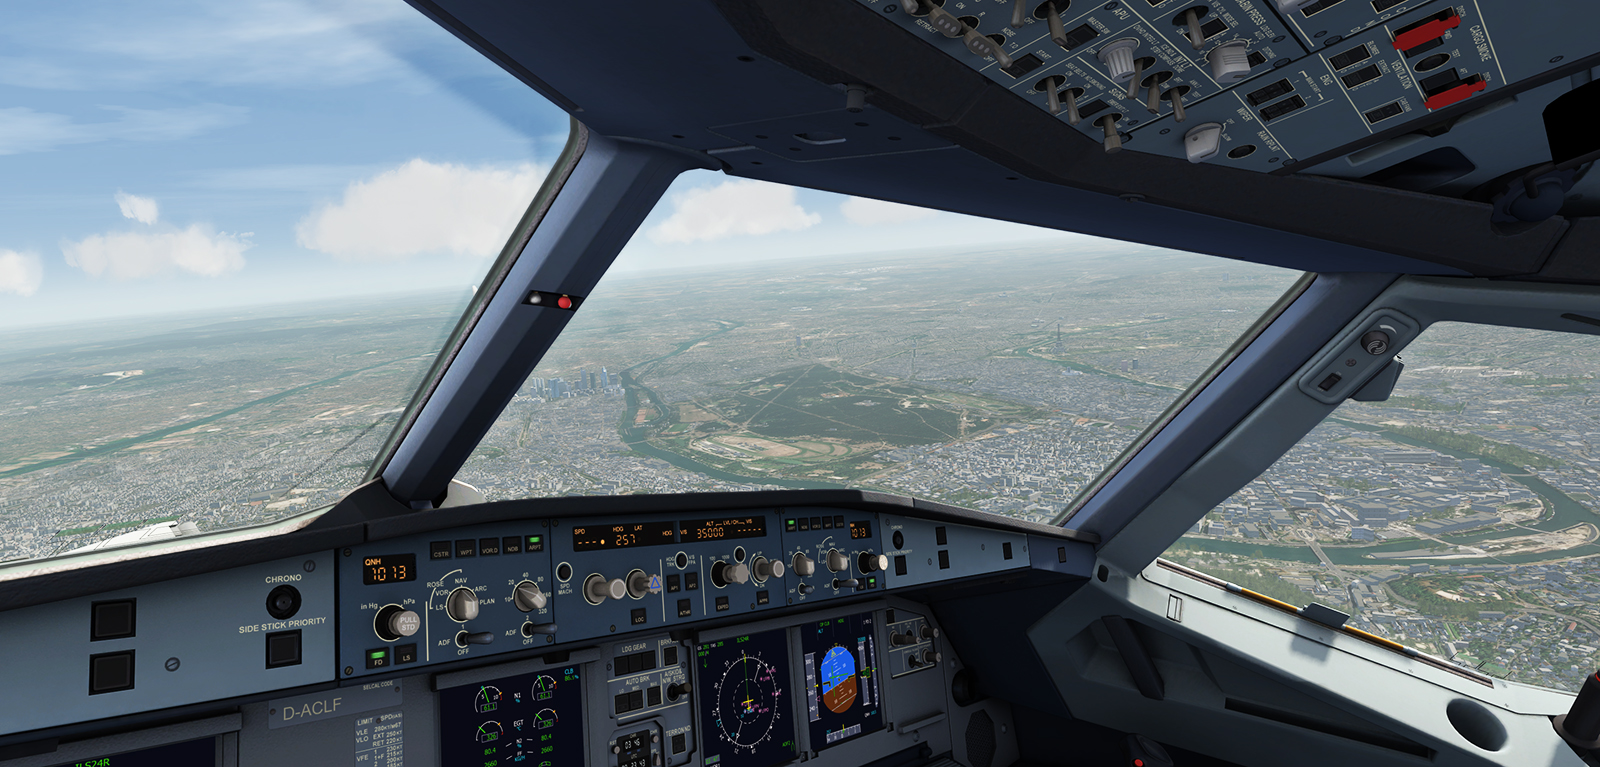 aerofly_fs_2_screenshot_06_20191005-2306